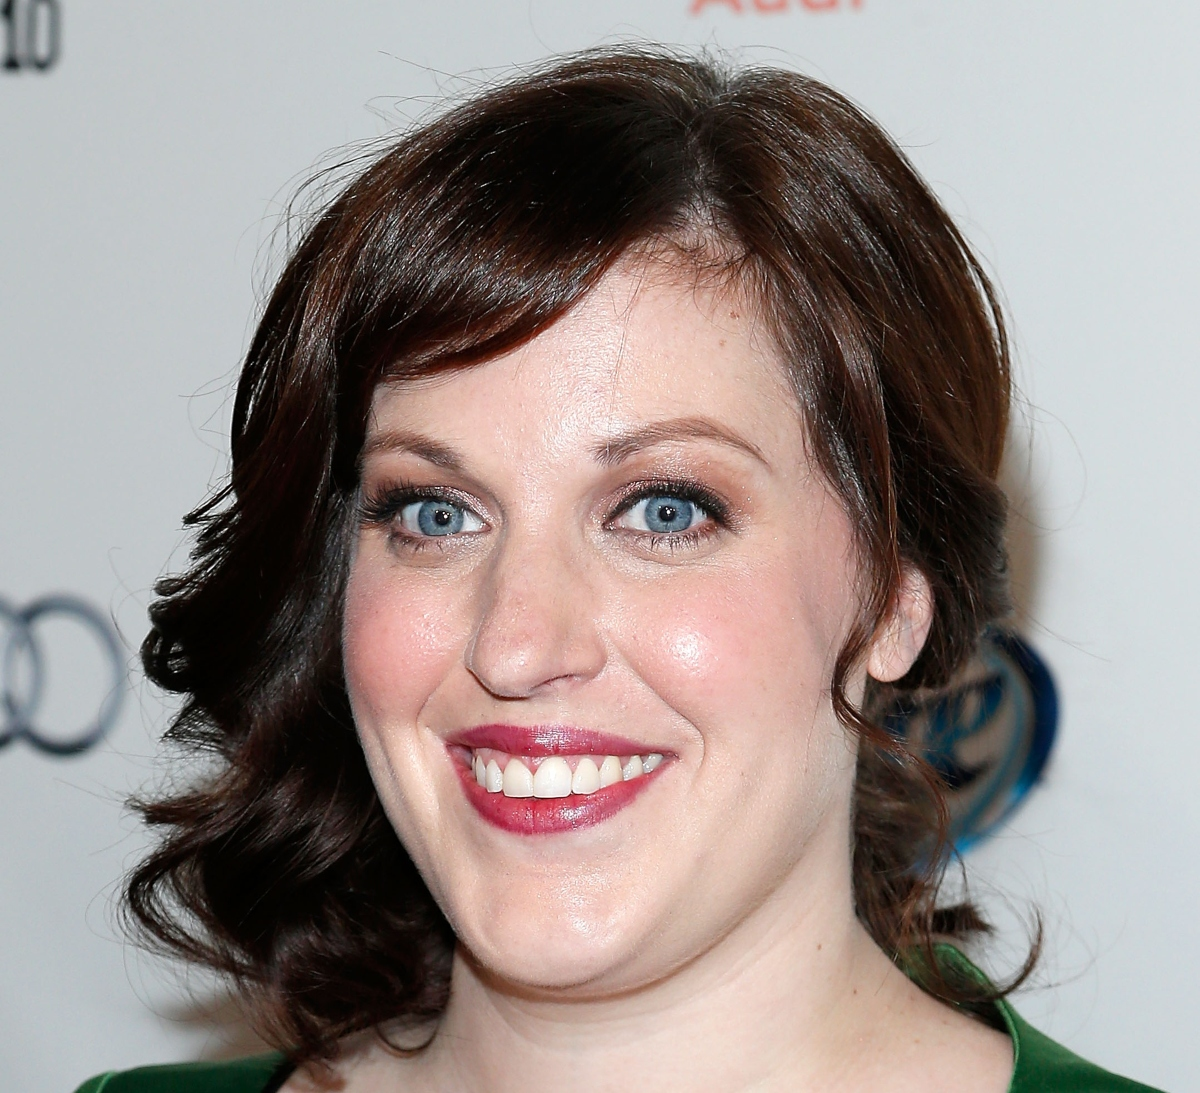 Allison Tolman attends the FX Networks Upfront screening of 'Fargo' at SVA Theater on April 9, 2014 in New York City